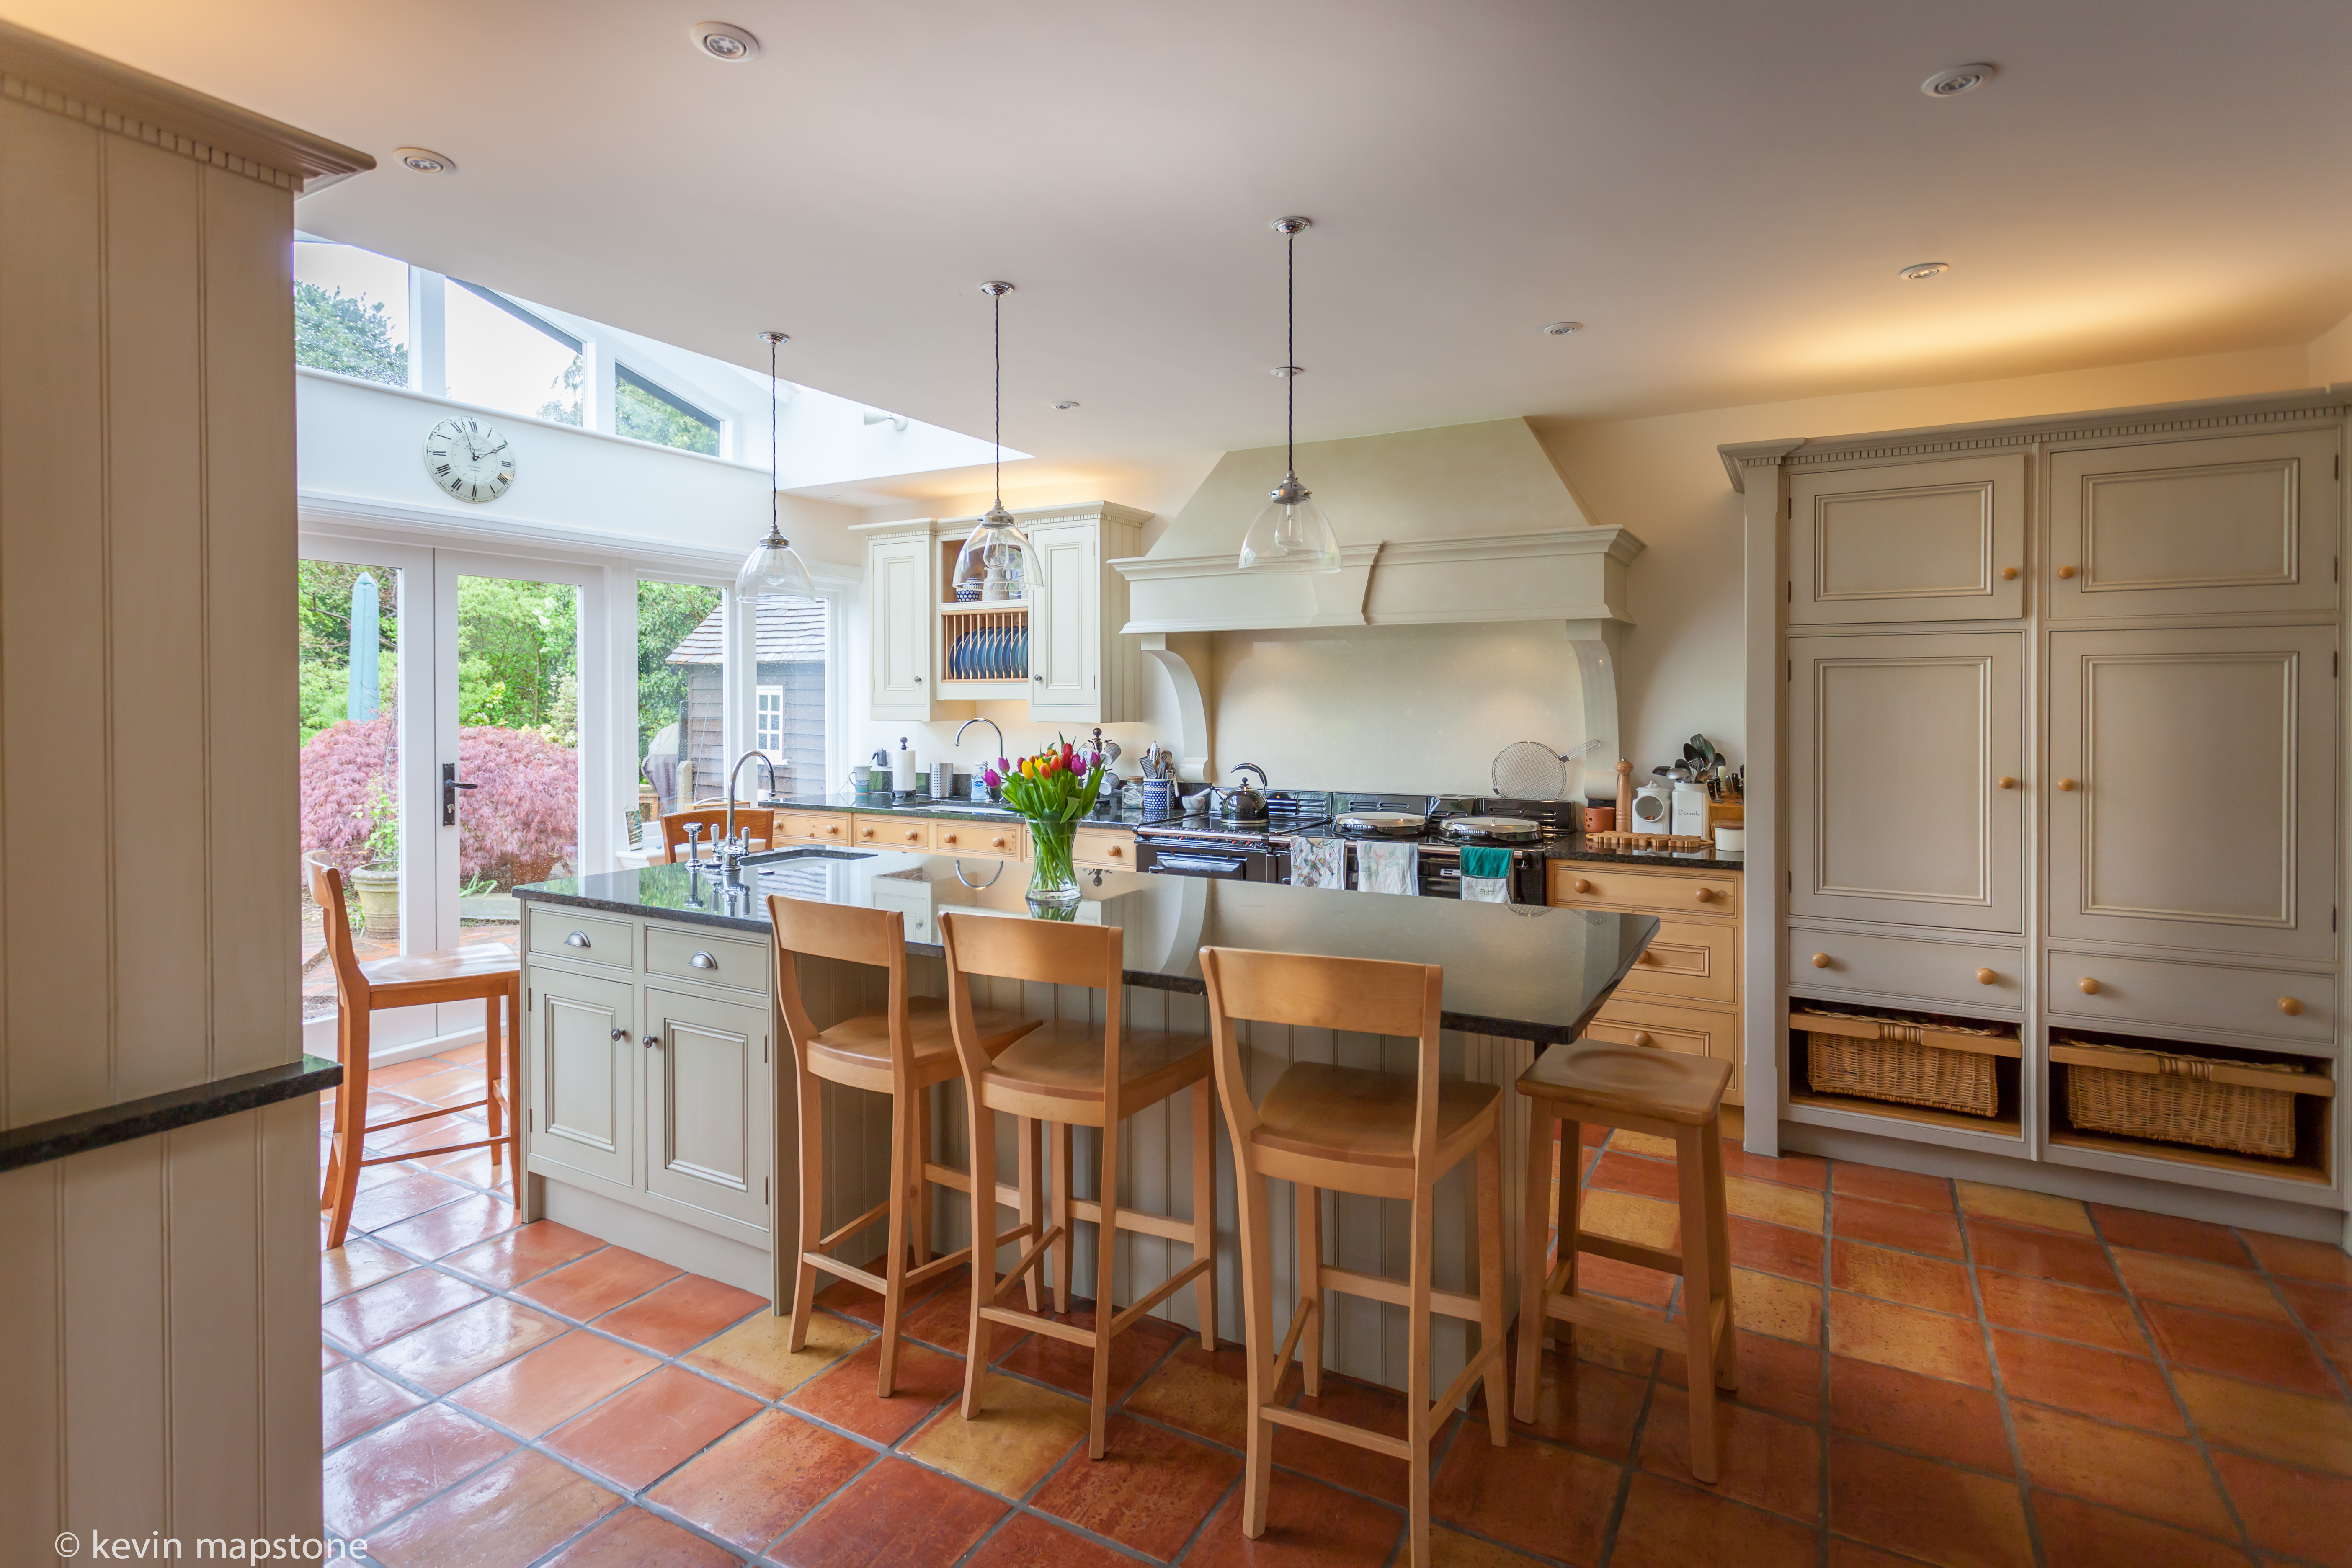 hand painted kitchen cabinets gerrards cross buckinghamshire - Hand Painted Kitchen Cabinets